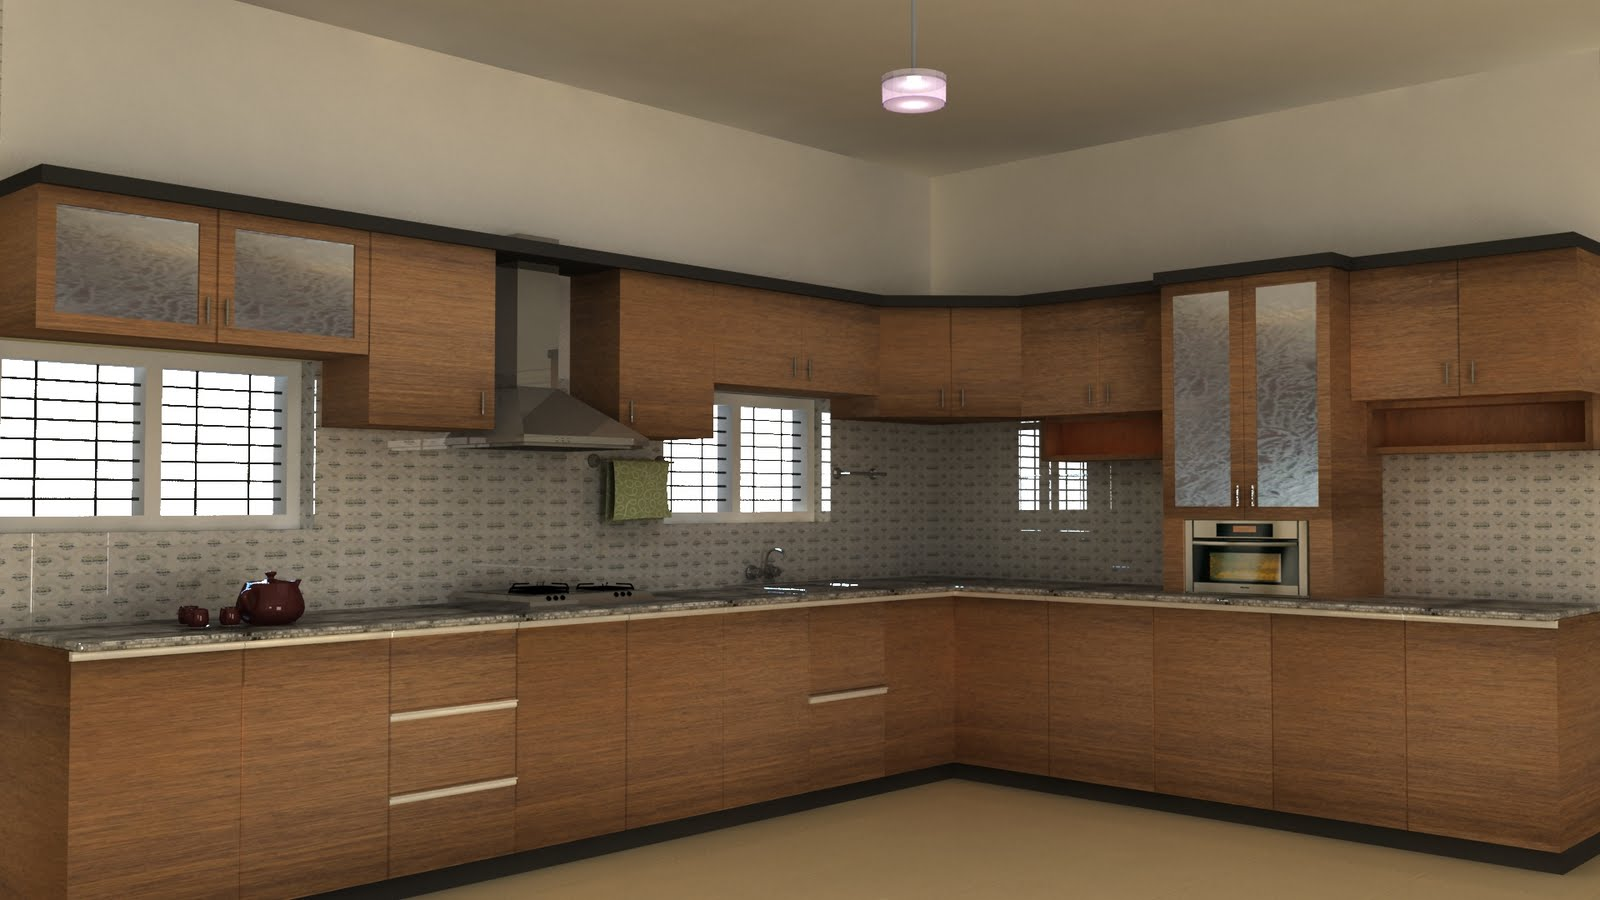 Architectural designing kitchen interiors for Interior design images kitchen